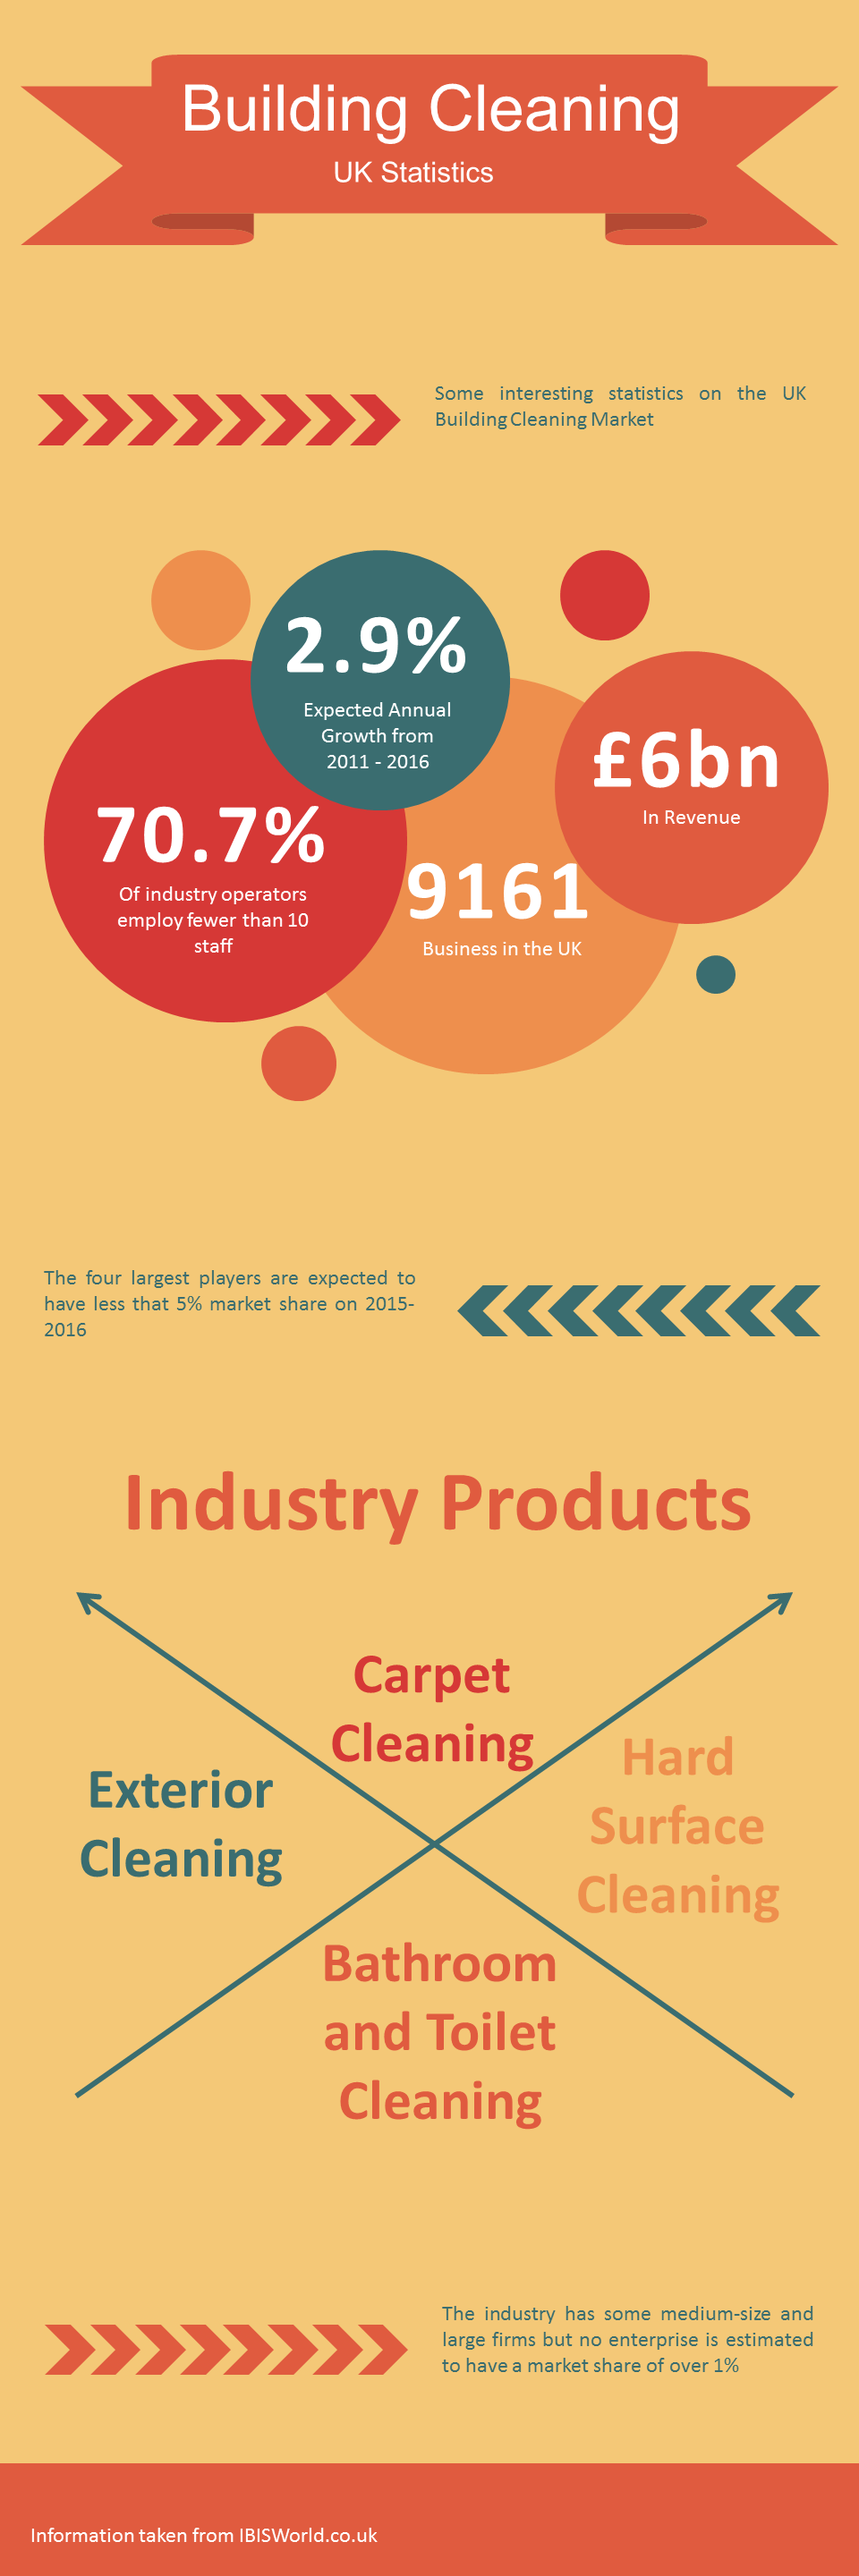 Cleaning Statistics In The Uk Startcarpetcleaning Co Uk